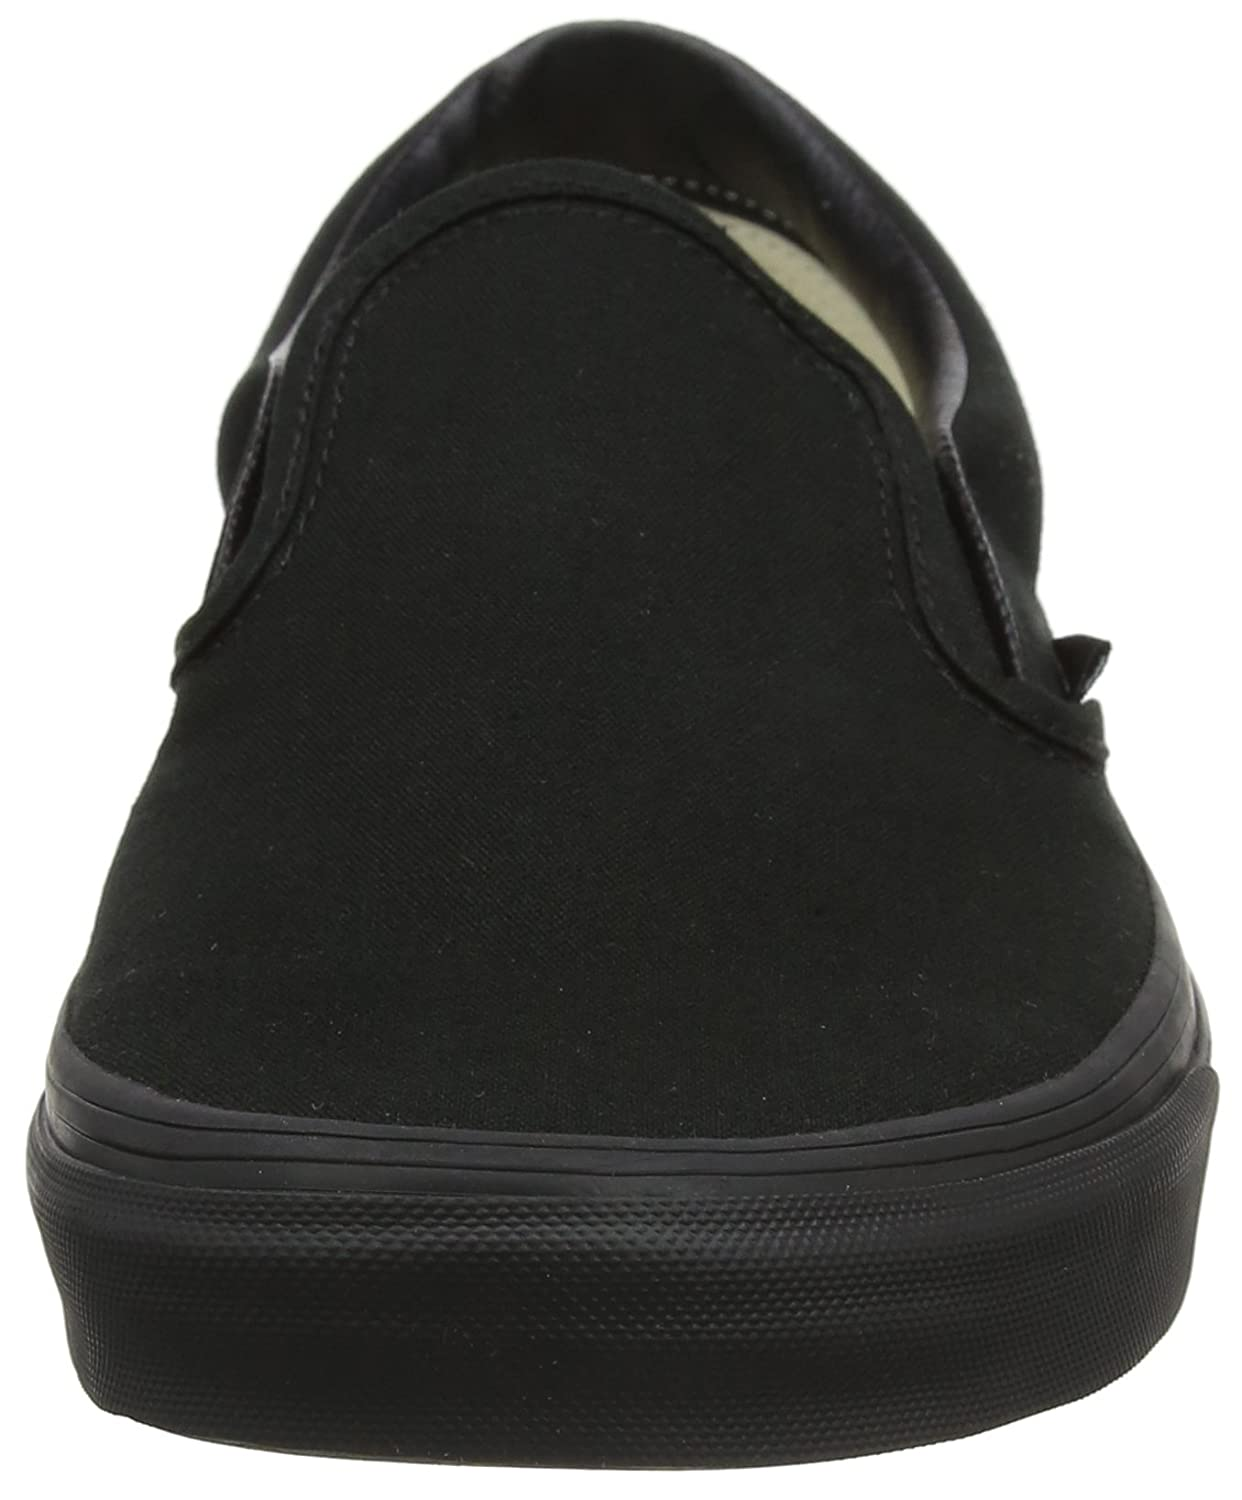 Vans Unisex Classic (Checkerboard) Slip-On Skate Shoe B00V6K70P6 6 D(M) US |Black/Black